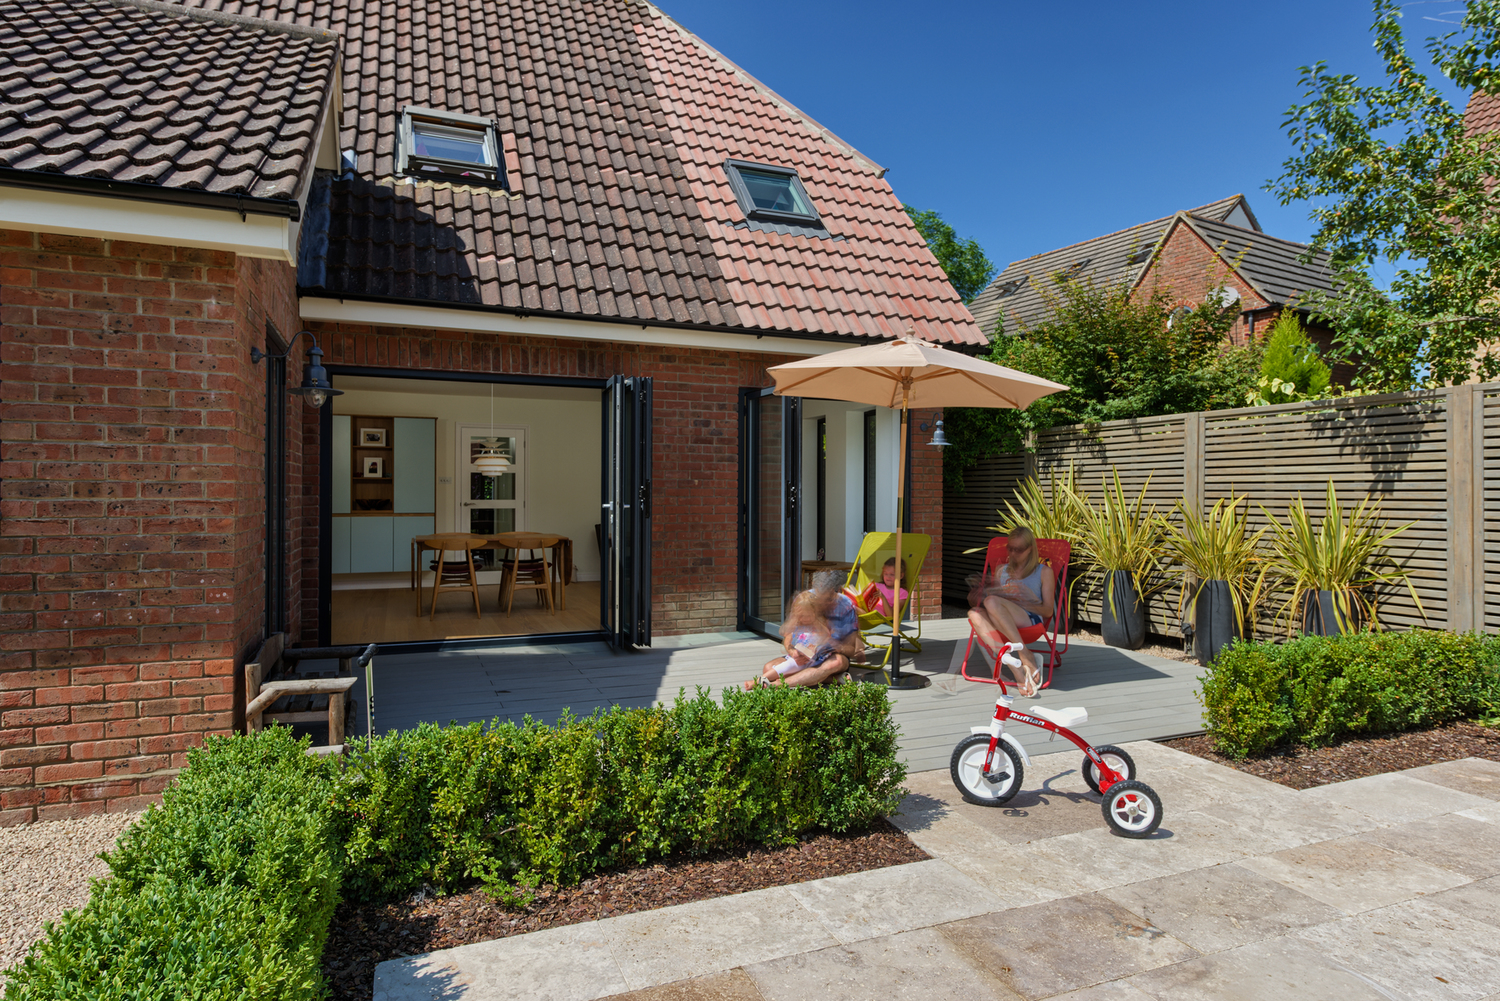 Garden view of a Scandinavian house extension by Harvey Norman Architects Bishop's Stortford